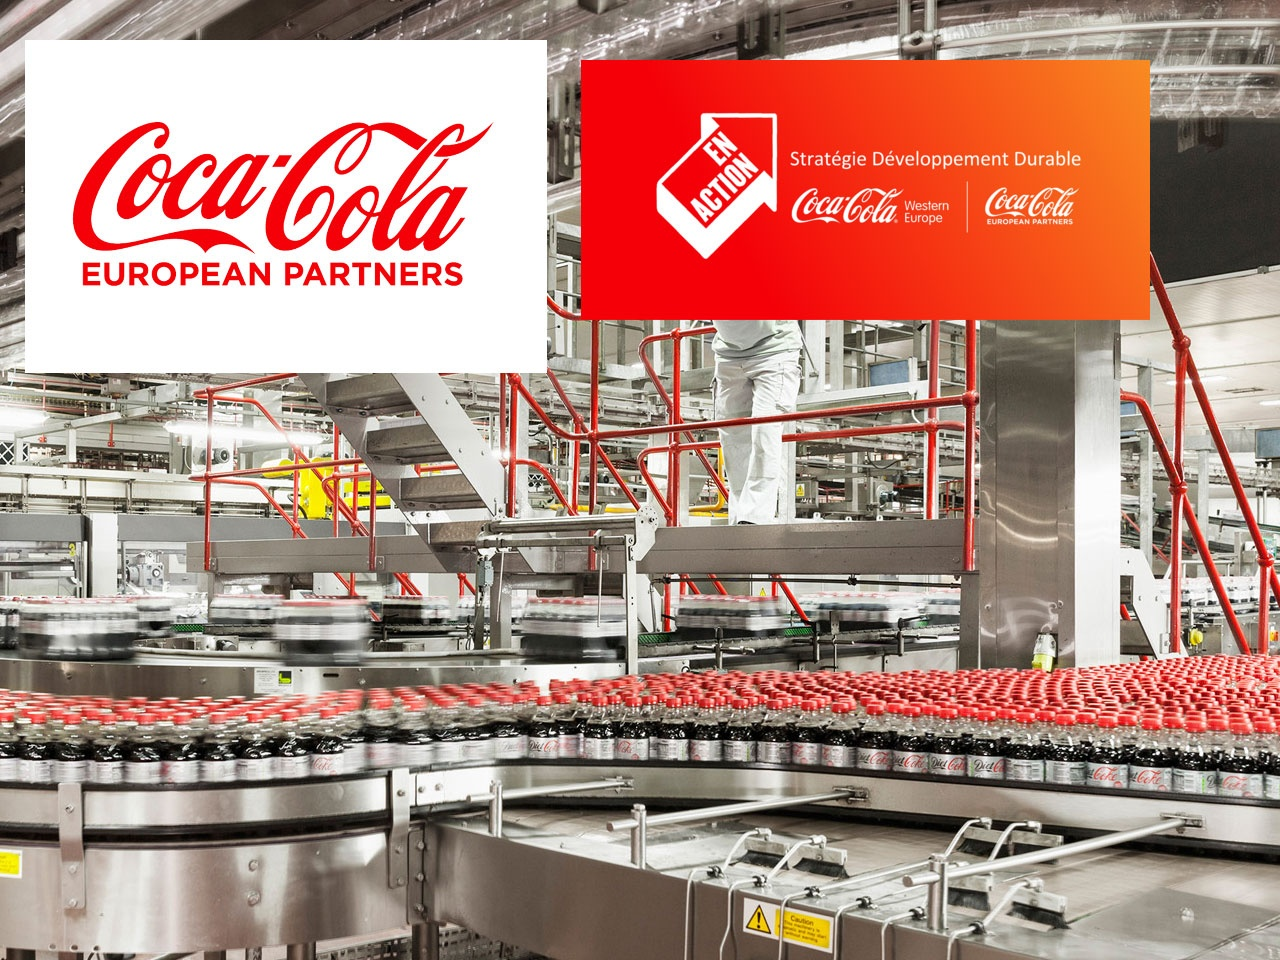 Coca Cola European Partners France investit 18 M€ dans son usine de Socx (59) en France